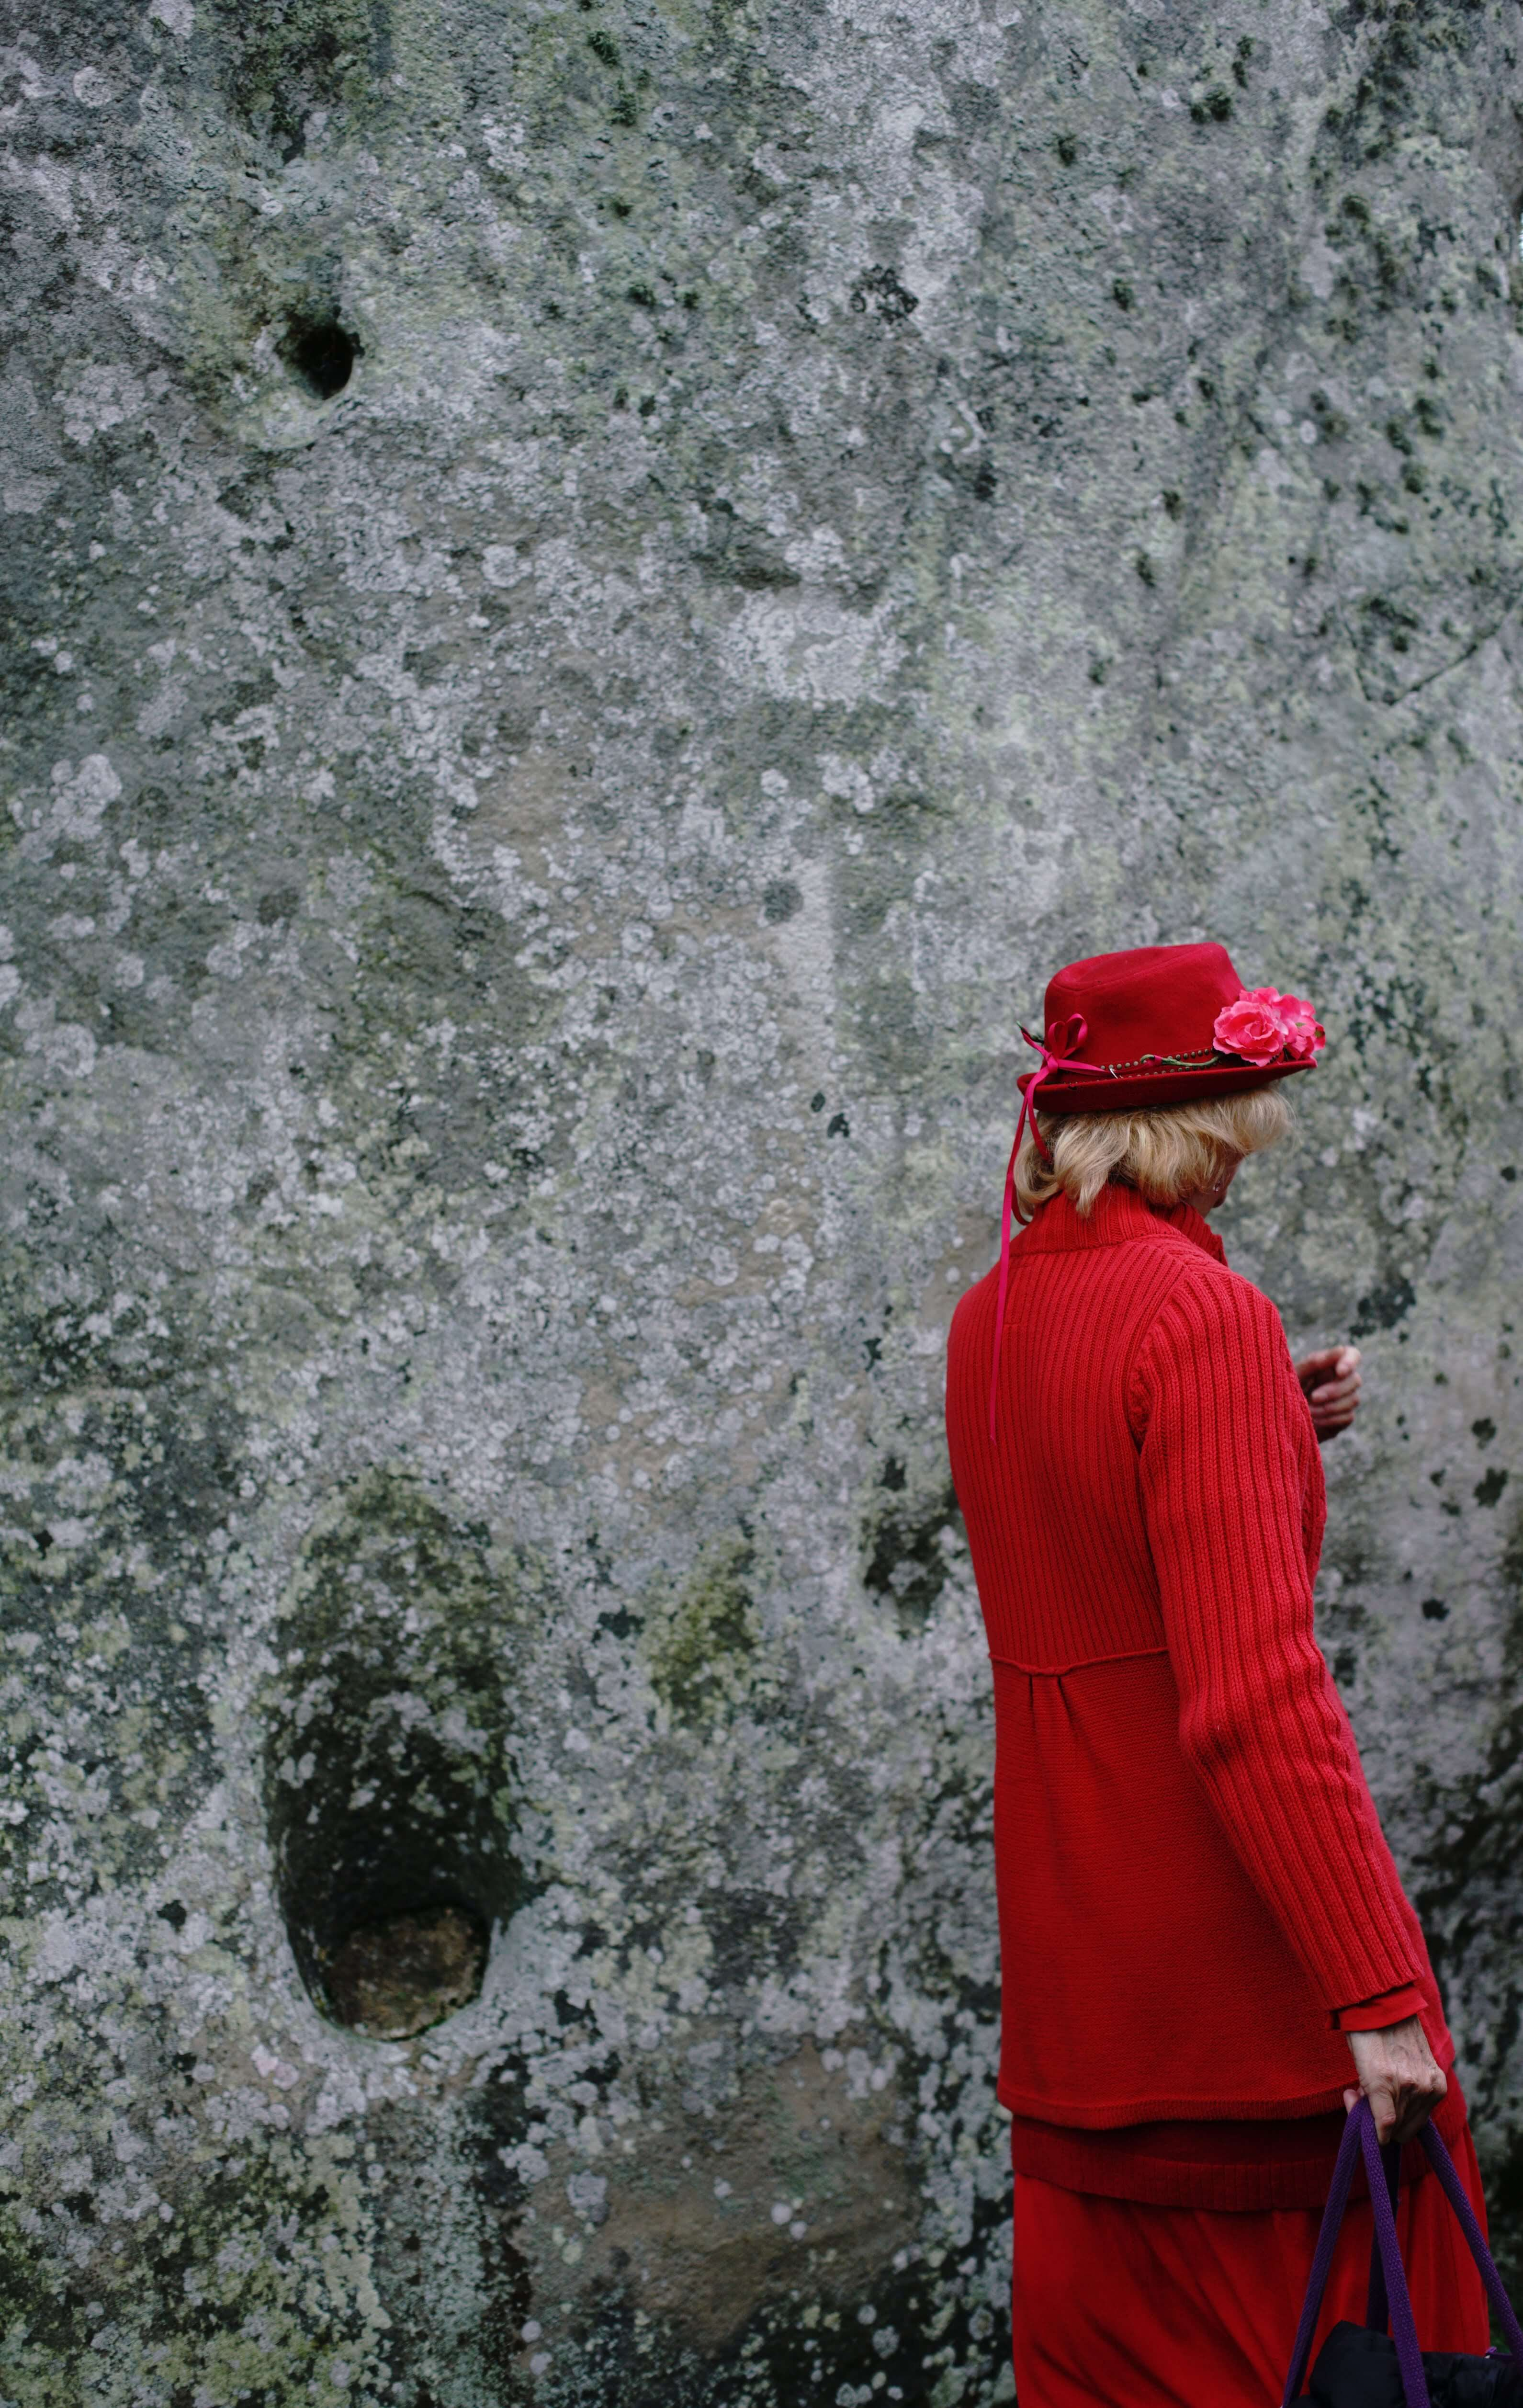 ana paganini stonehenge Summer and Winter Solstices the south west collective of photography lady in red